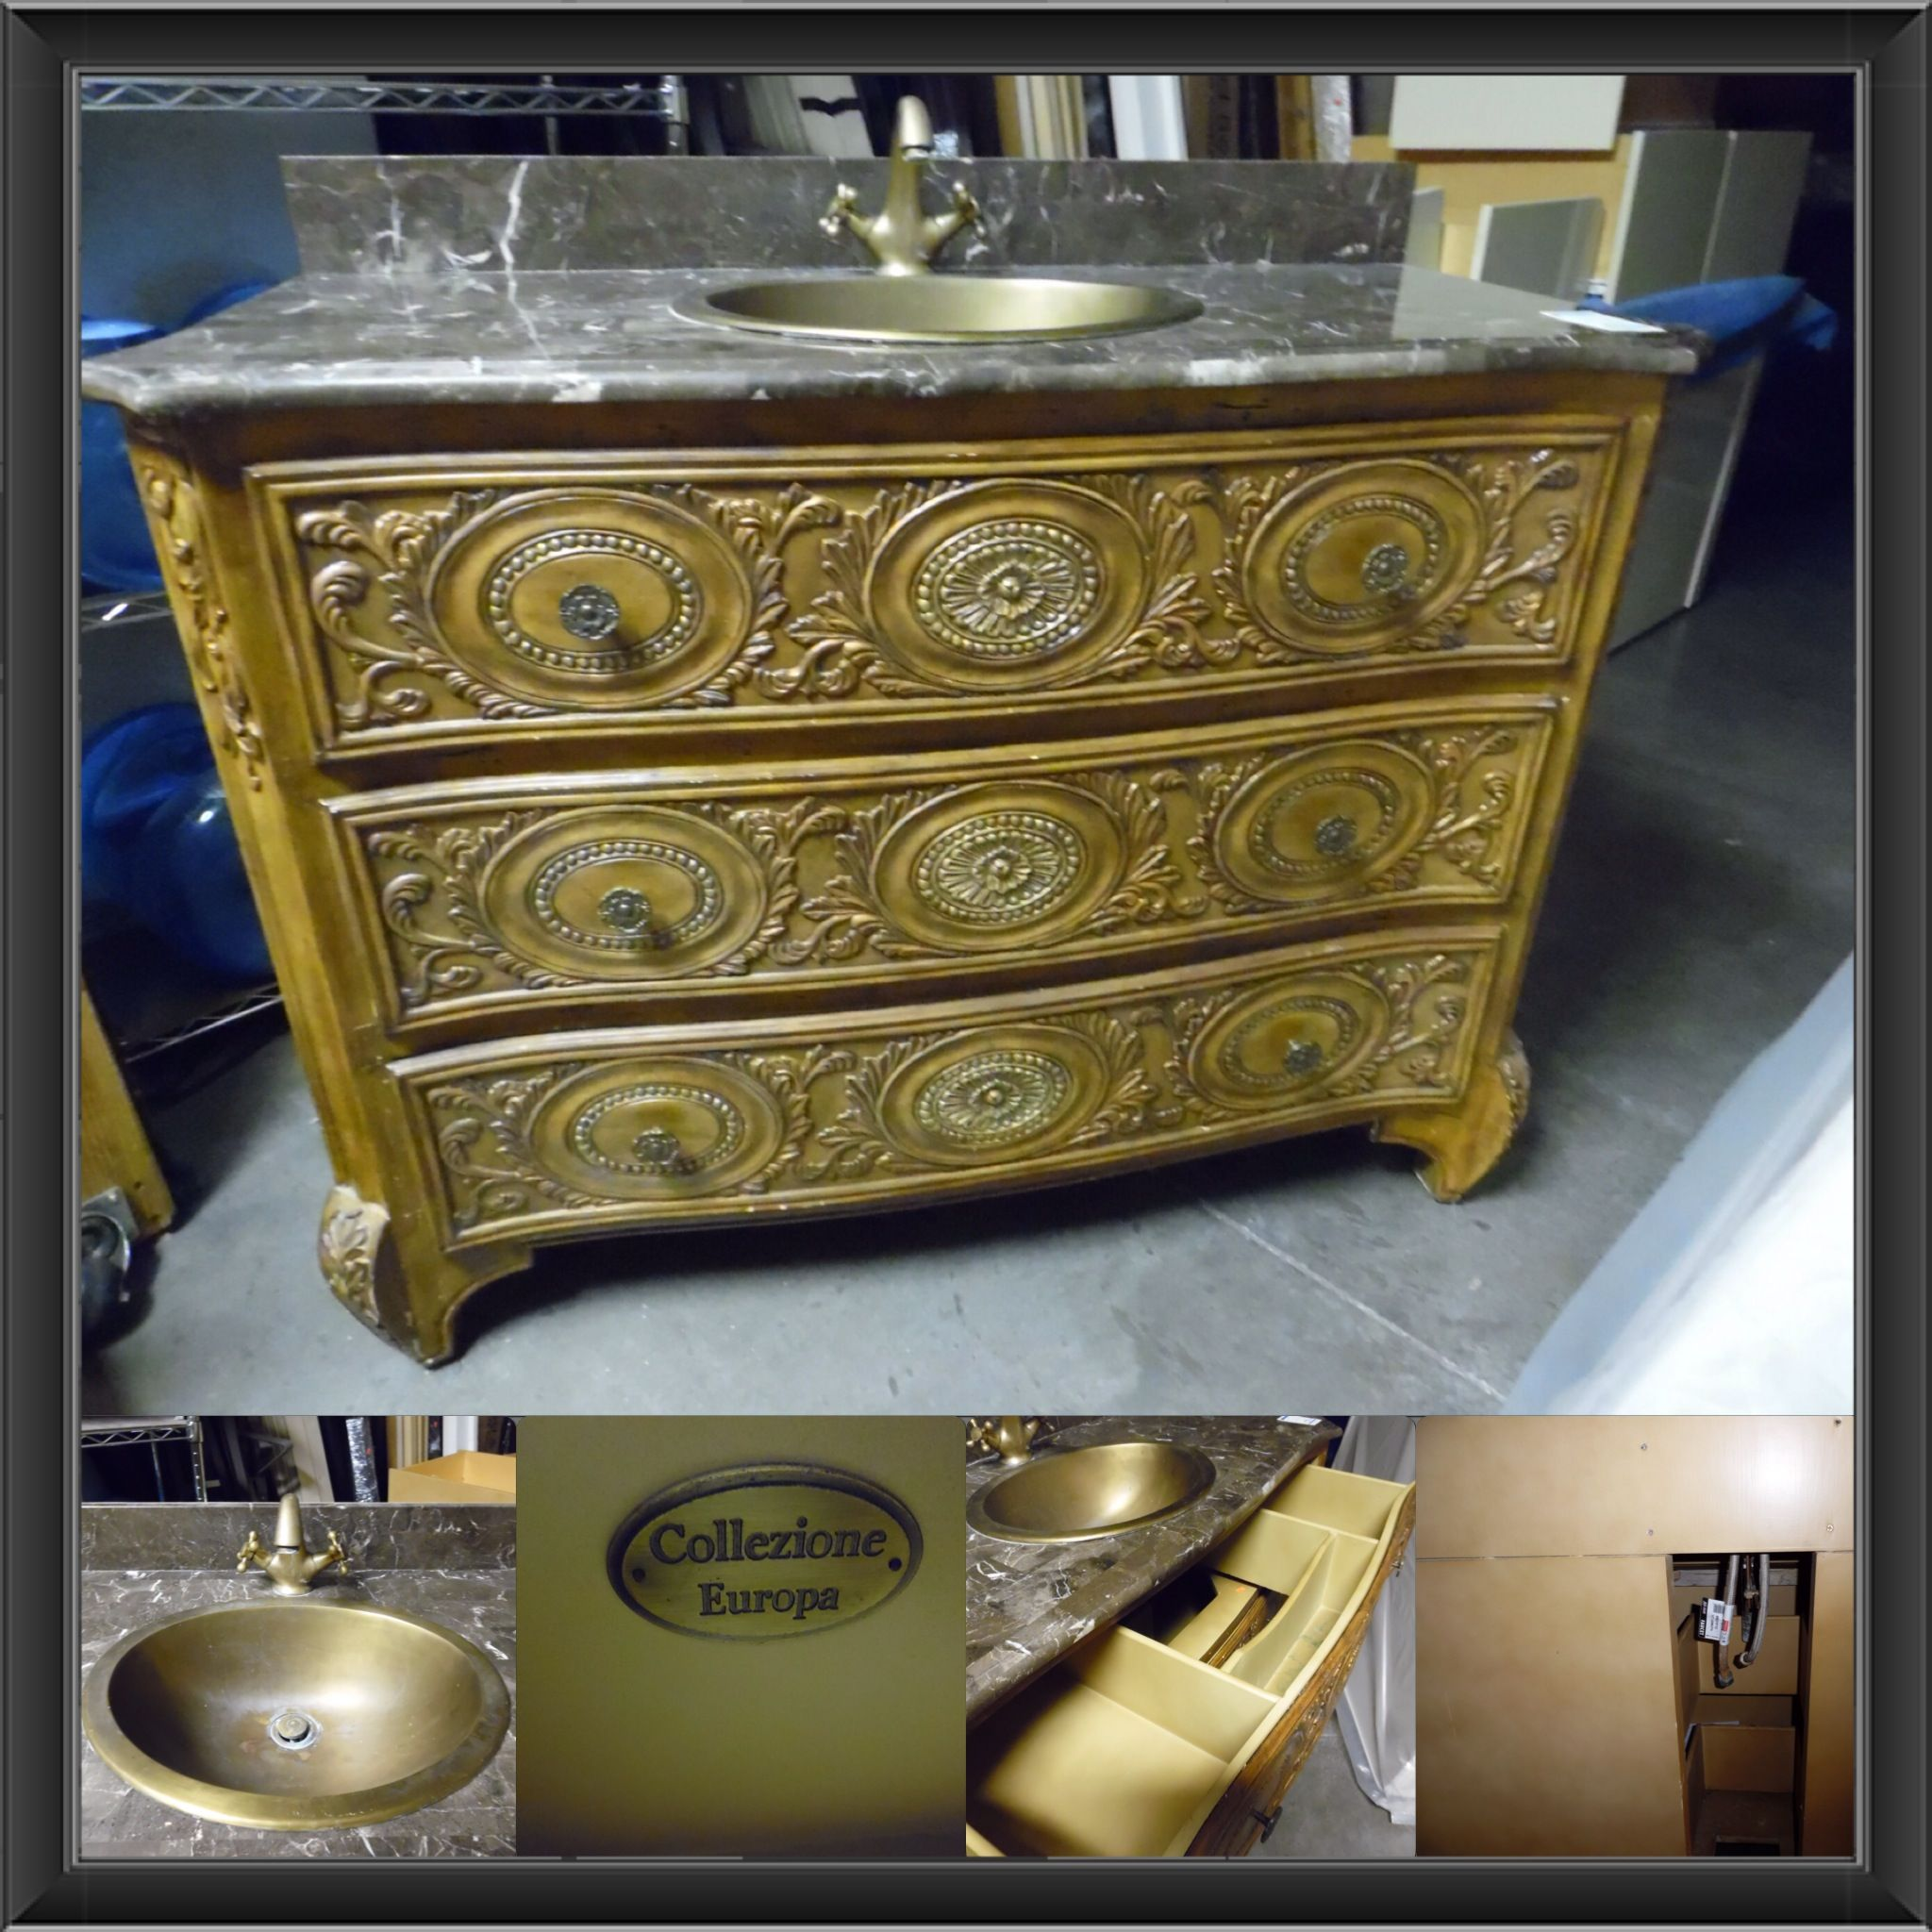 This is a great Vanity for that New Construction or Dream Bathroom Remodel #Remodel